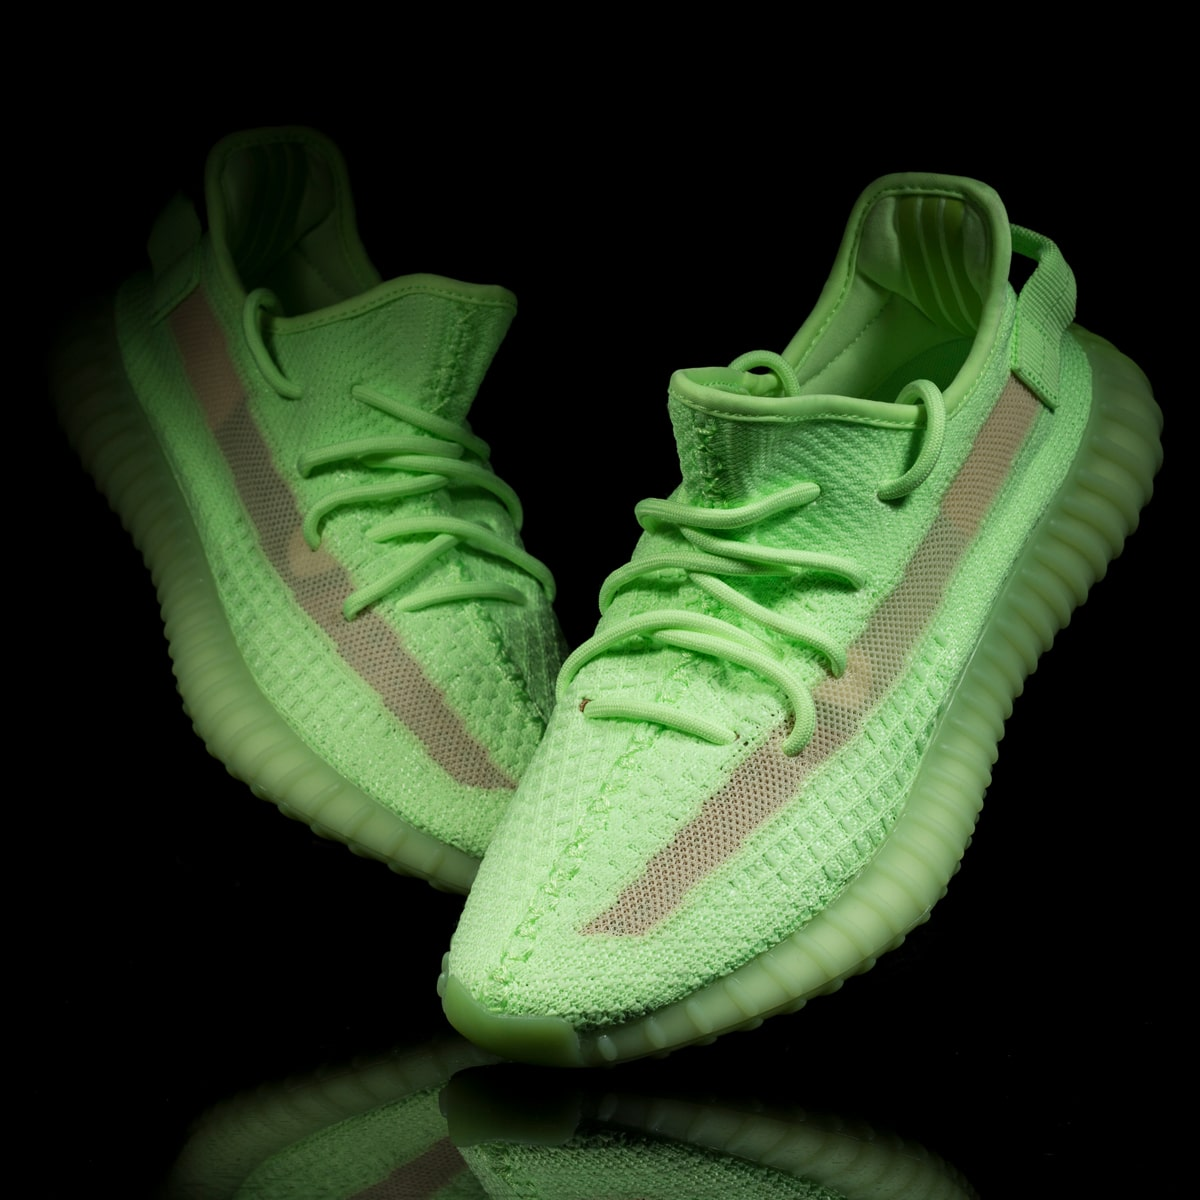 6b838541f32d4 Detailed Looks at the adidas YEEZY 350 v2